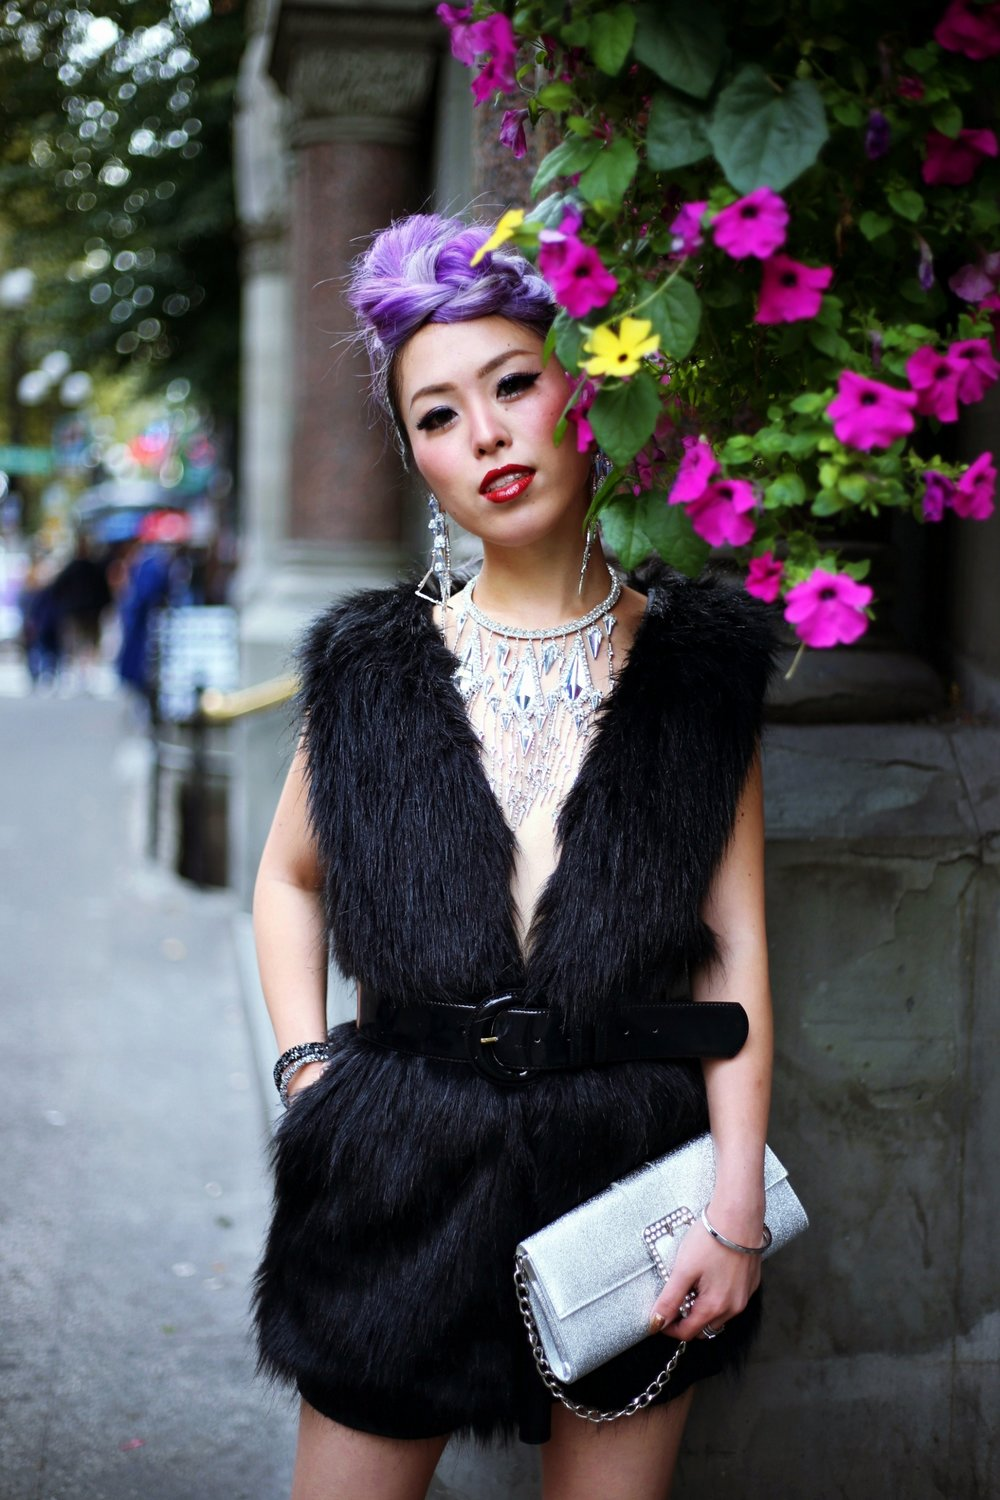 Swarovski Fabulously Necklace &  Fabulously Clip Earrings_Revolve Black Fur Vest_Express Hight Waist Mini Skirt_Mango Patent Belt_Steve Madden Platform Pumps_Swarovski  Crystaldust Bangle Double, Dark Crystals & Gray_Fresh Bangle & Fresh Ring_Fizzy Ring Set_Funk Ring Set_Aika's Love Closet_Seattle Fashion Blogger_Japan_Lavender Hair_Colored Hair_avant garde hairstyle 26